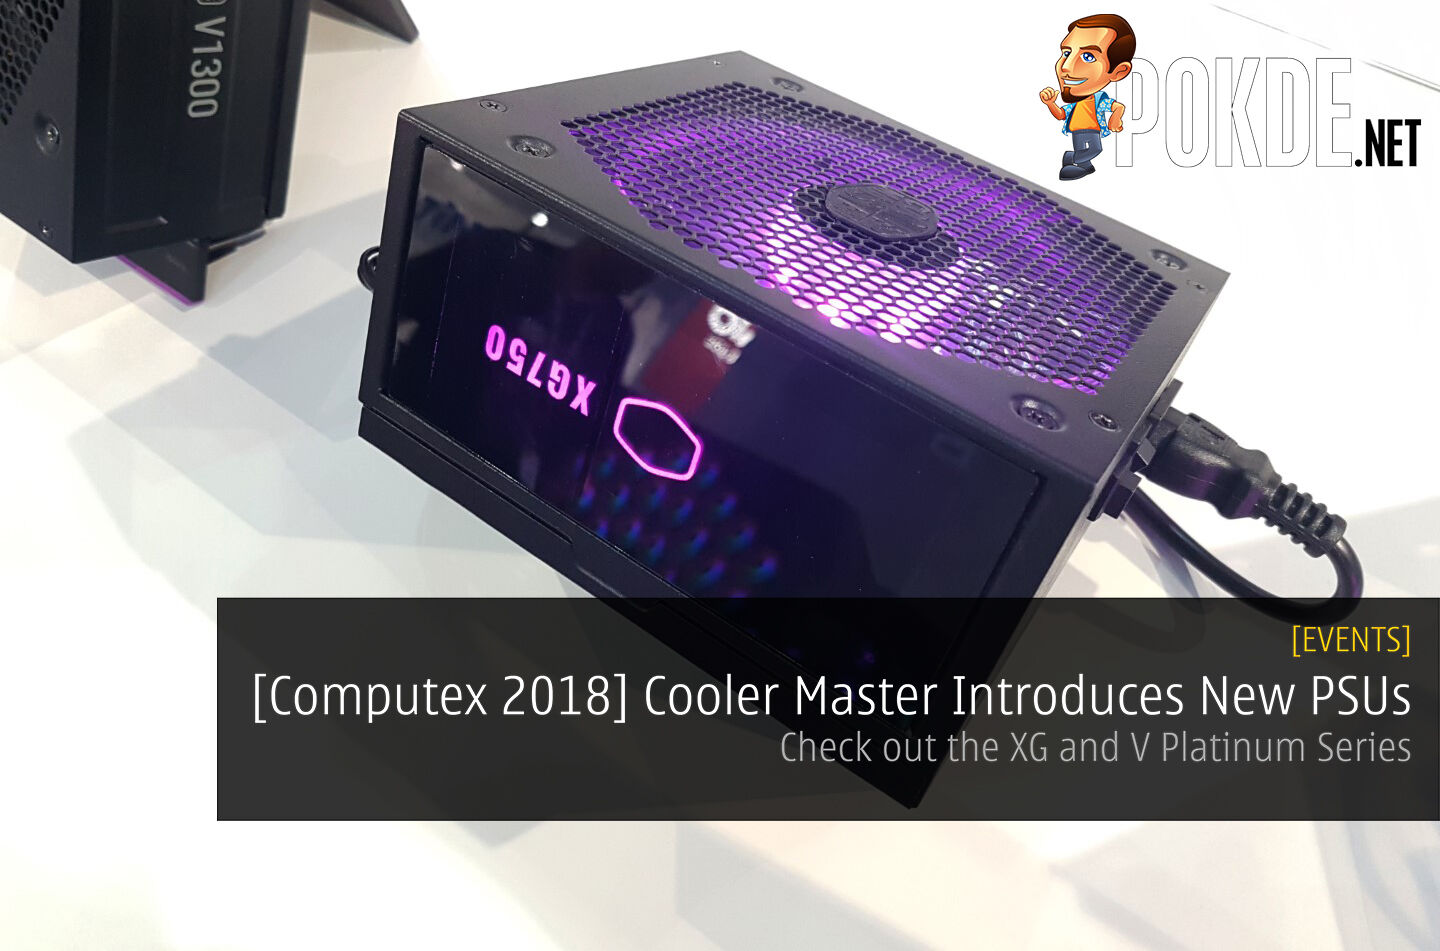 [Computex 2018] Cooler Master Introduces New PSUs - Check out the XG and V Platinum Series 28